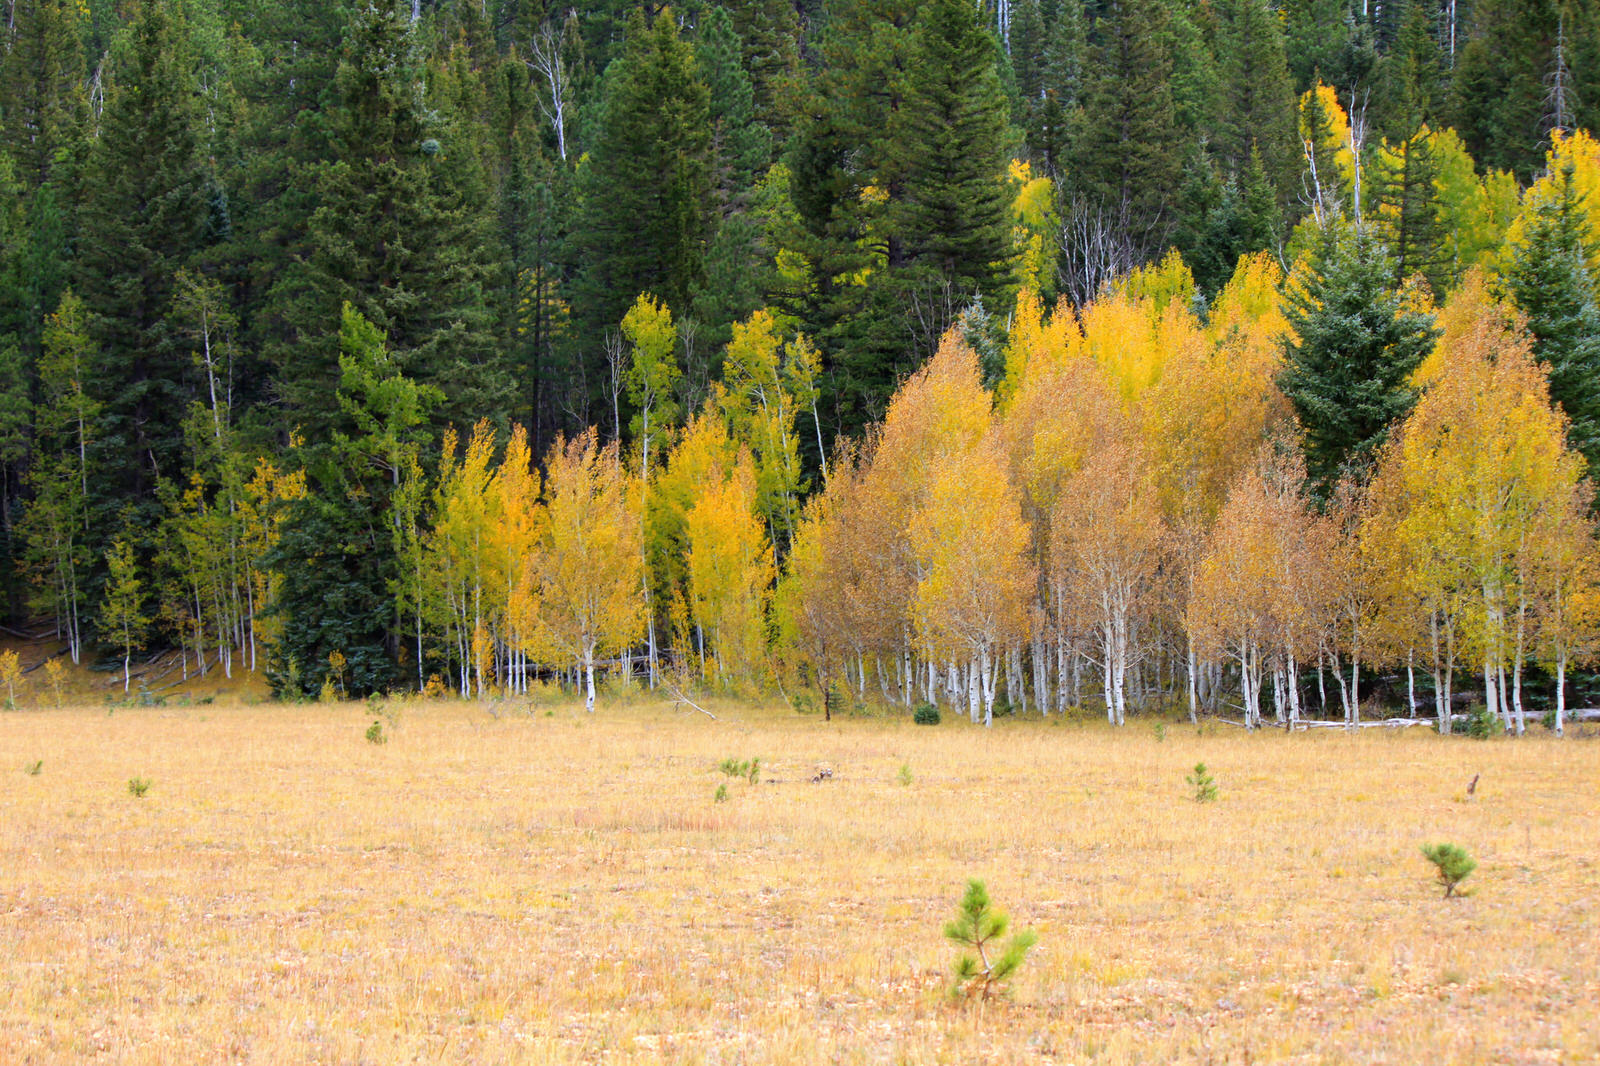 photo: Fall colors on the Kaibab National Forest. Photo by U.S. Forest Service, Southwest.